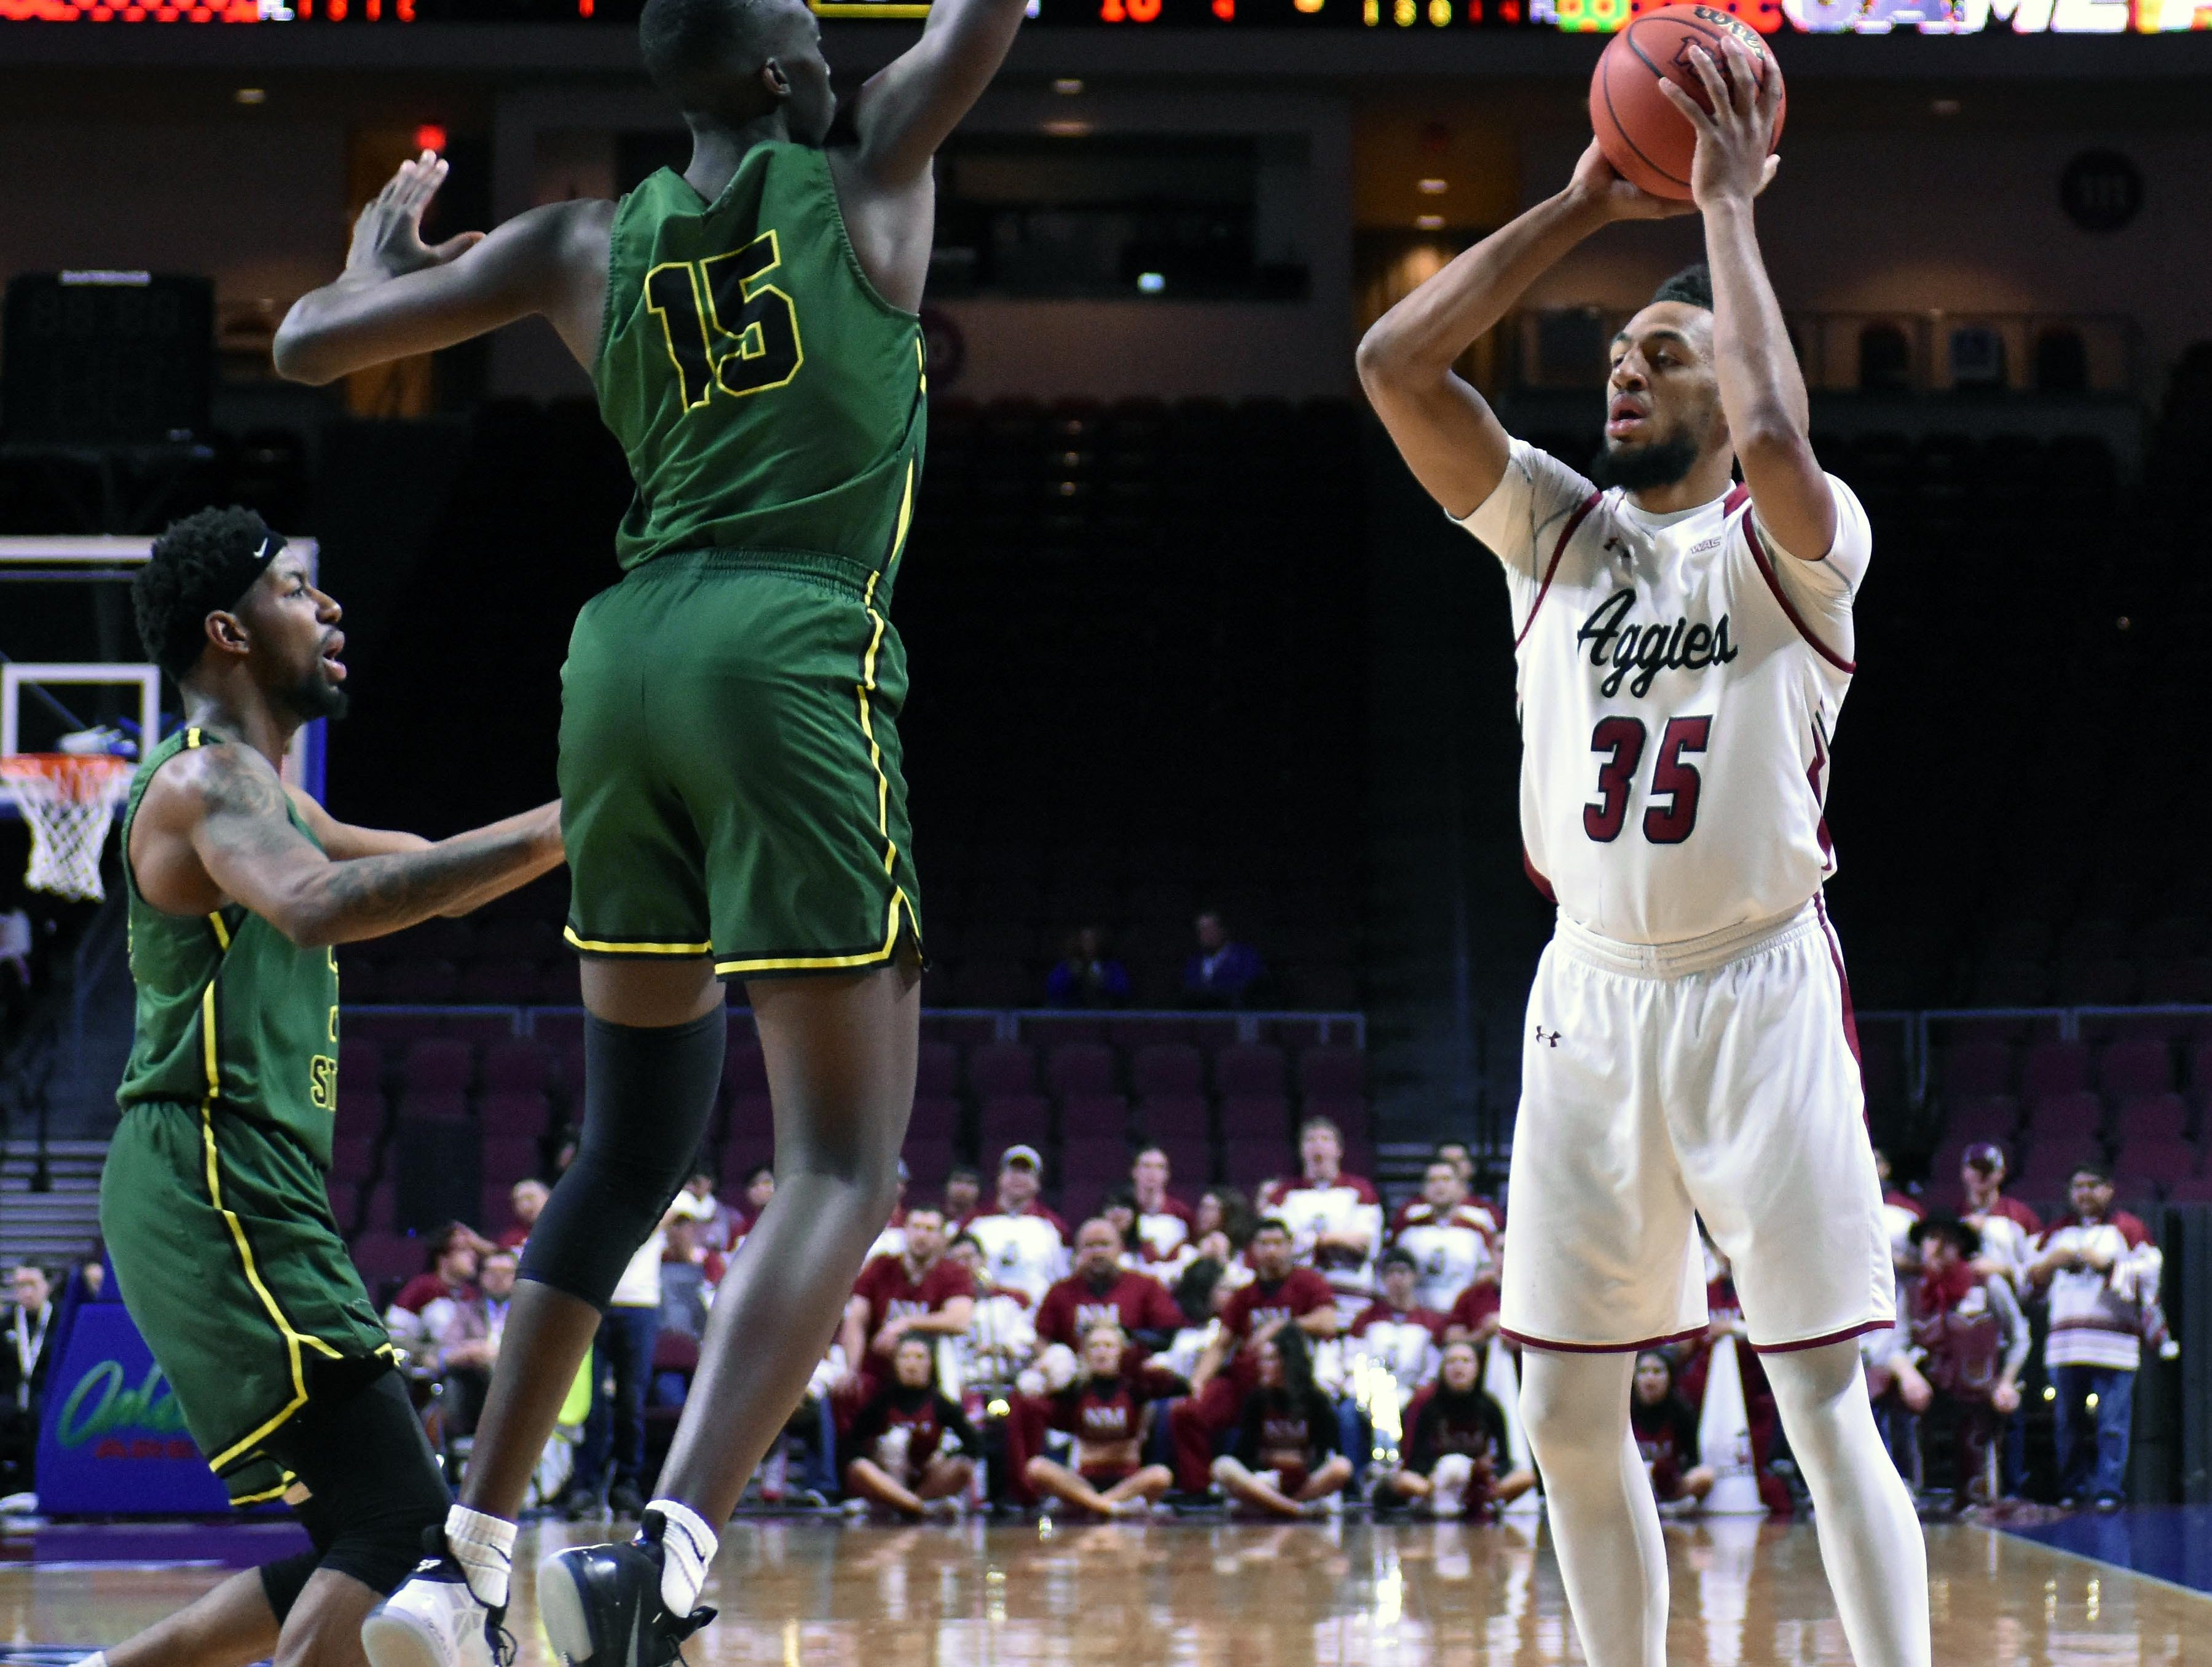 New Mexico State's Johnny McCants looks to make a pass as Chicago State's Noah Bigirumwami closes on him in the first half a WAC Tournament first-round game Thursday, March 14, 2019, at the Orleans Arena in Las Vegas, Nevada.